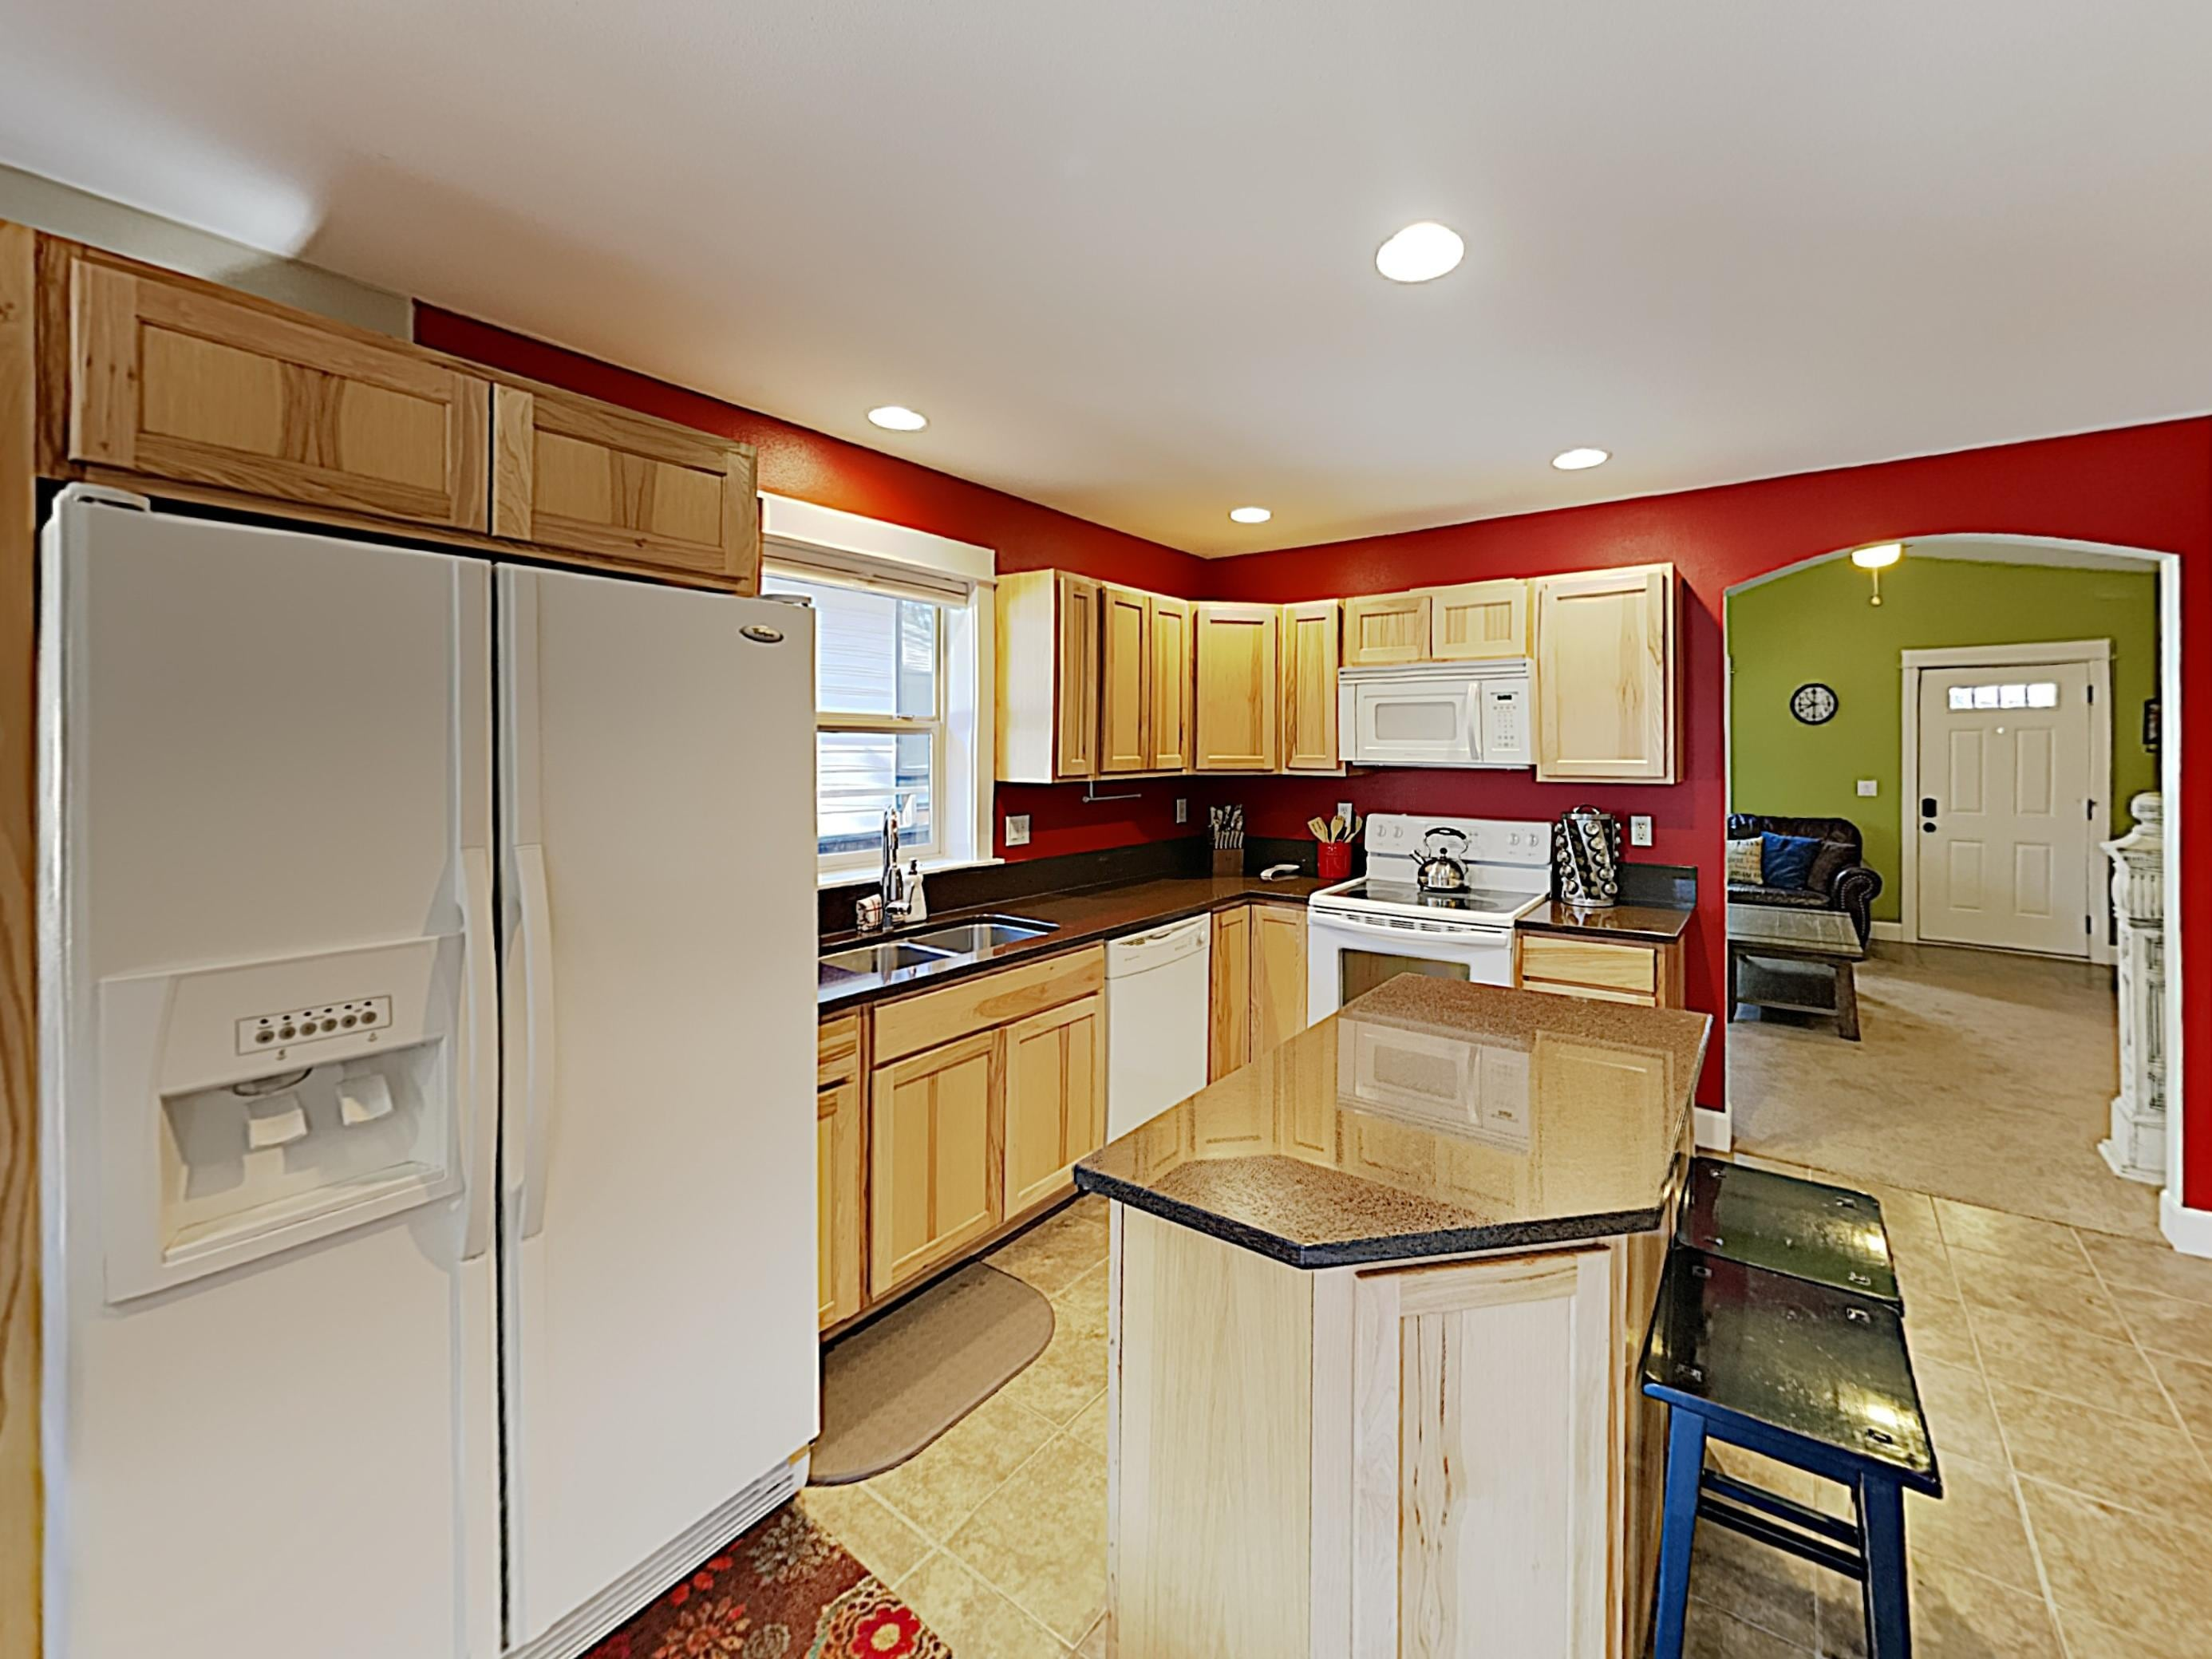 The kitchen is appointed with a full suite of appliances and plenty of cookware.